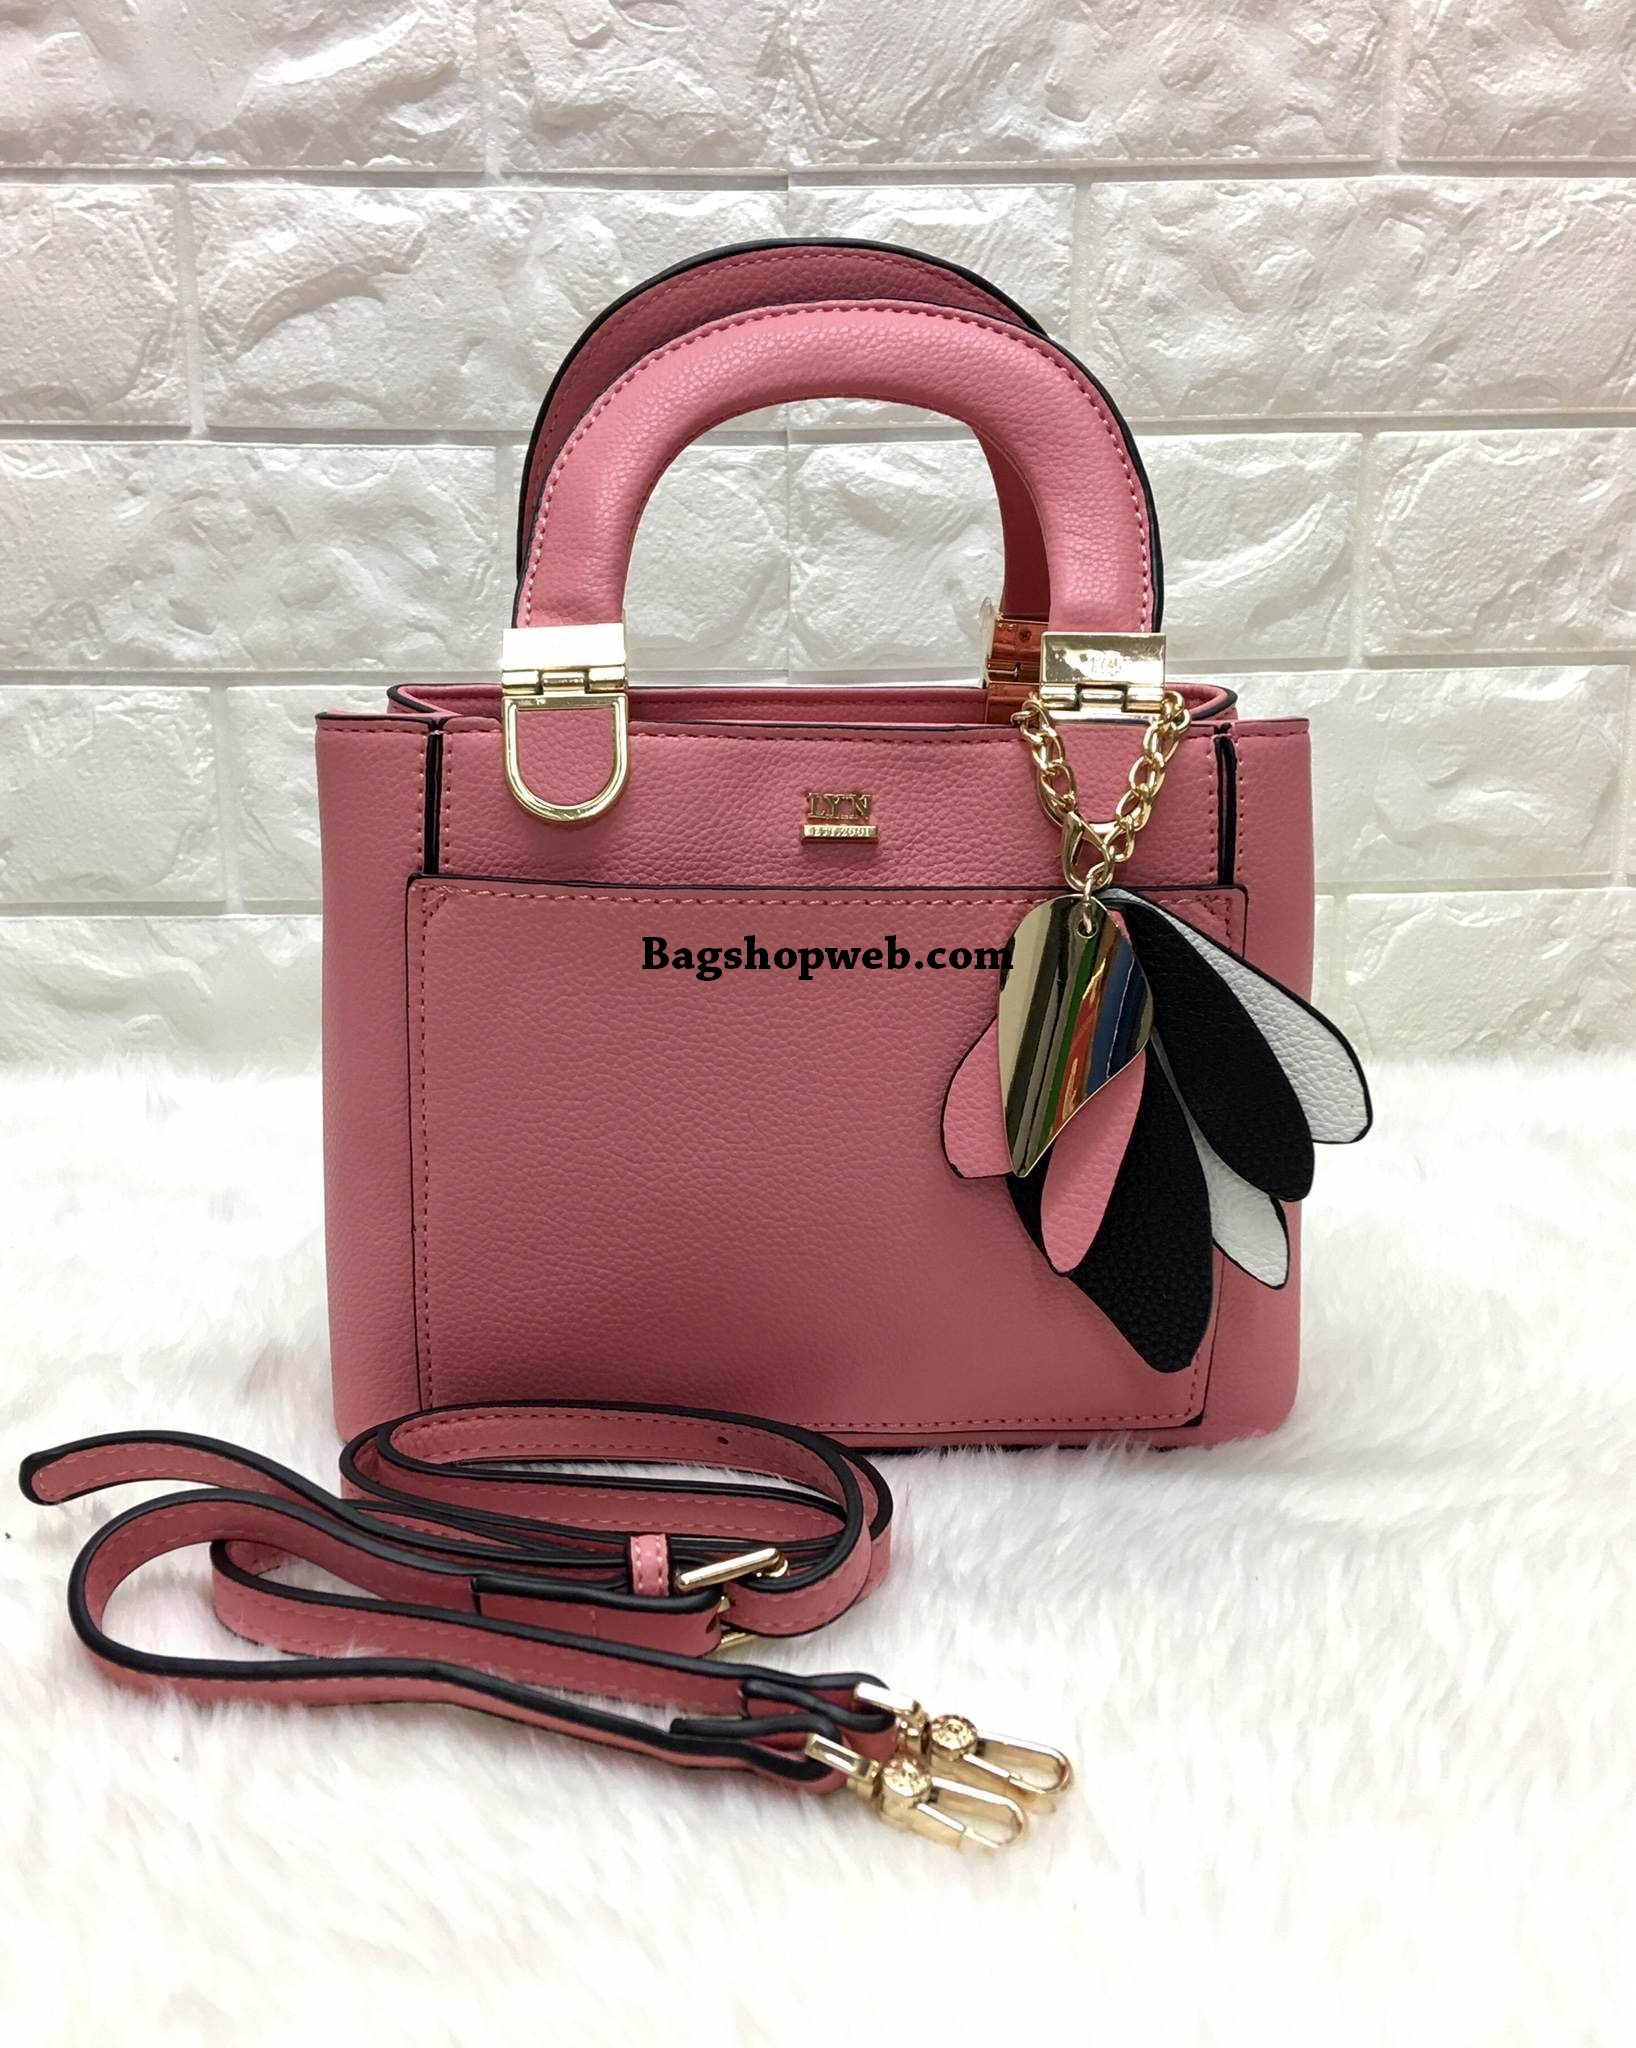 LYN Hana S Bag 2017